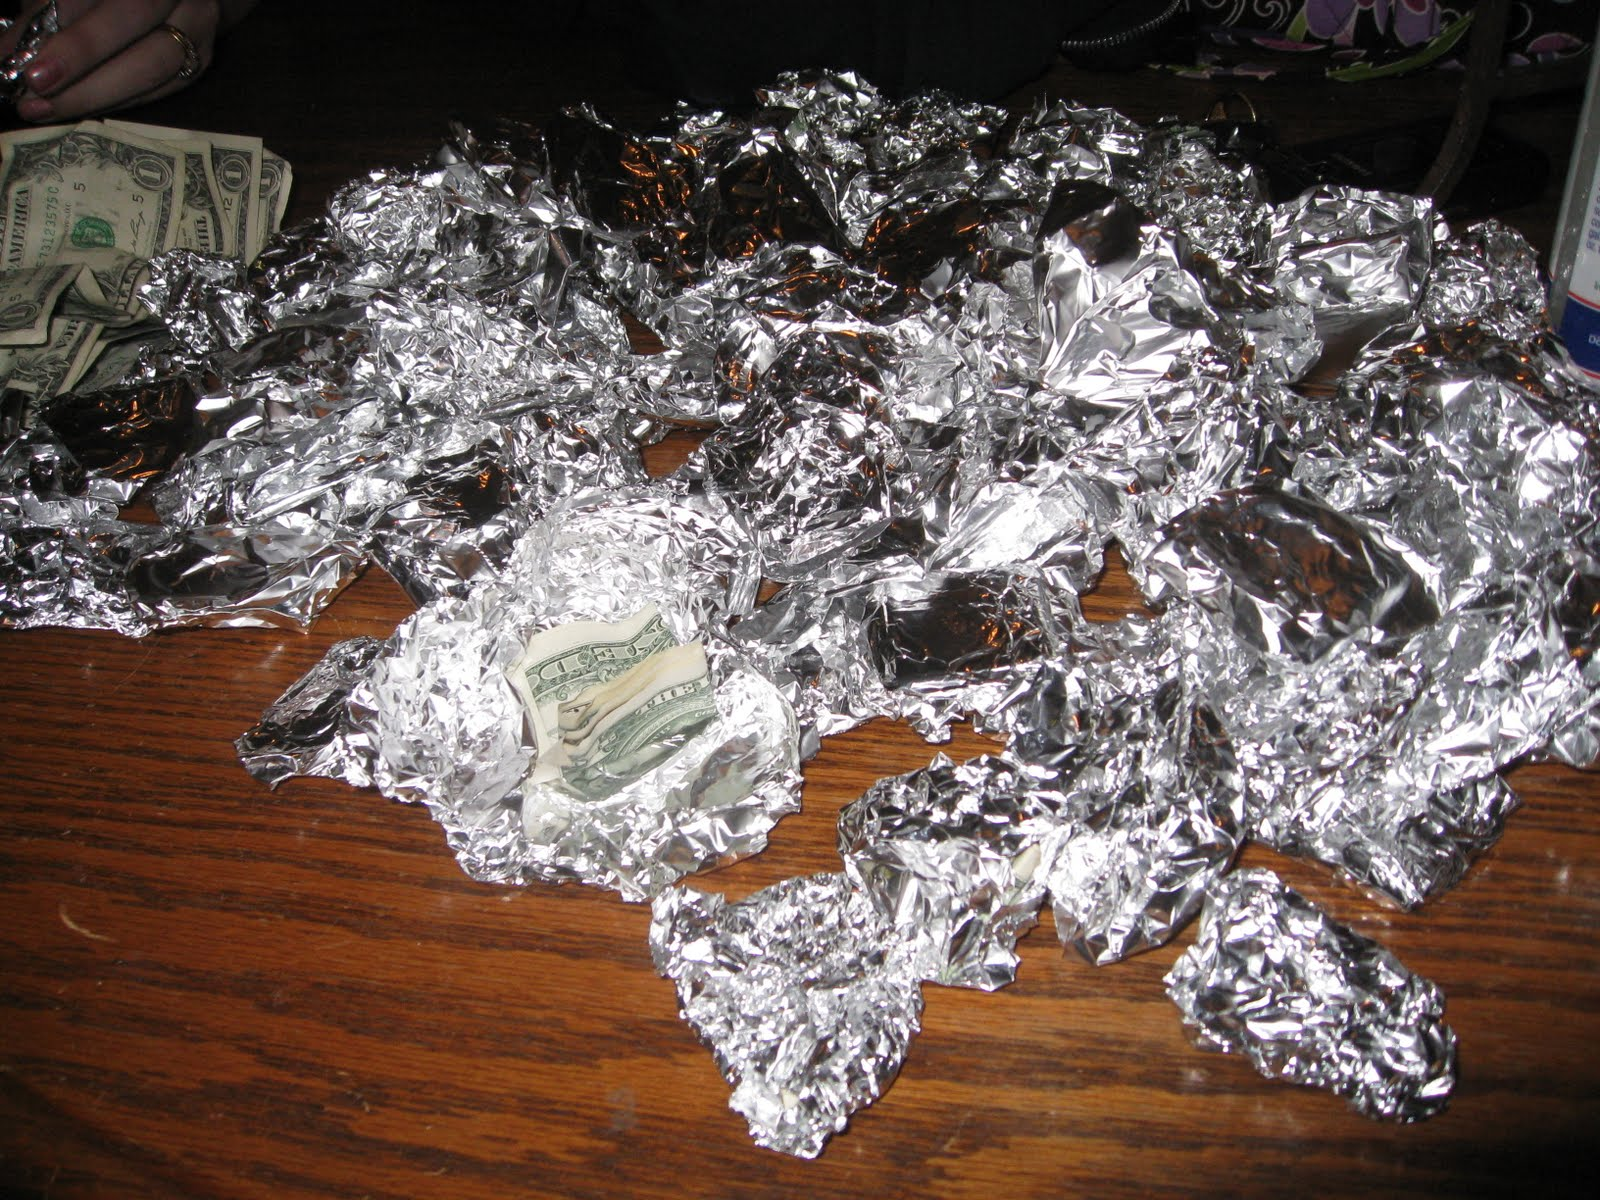 Bonz blogz: foil as a gift?